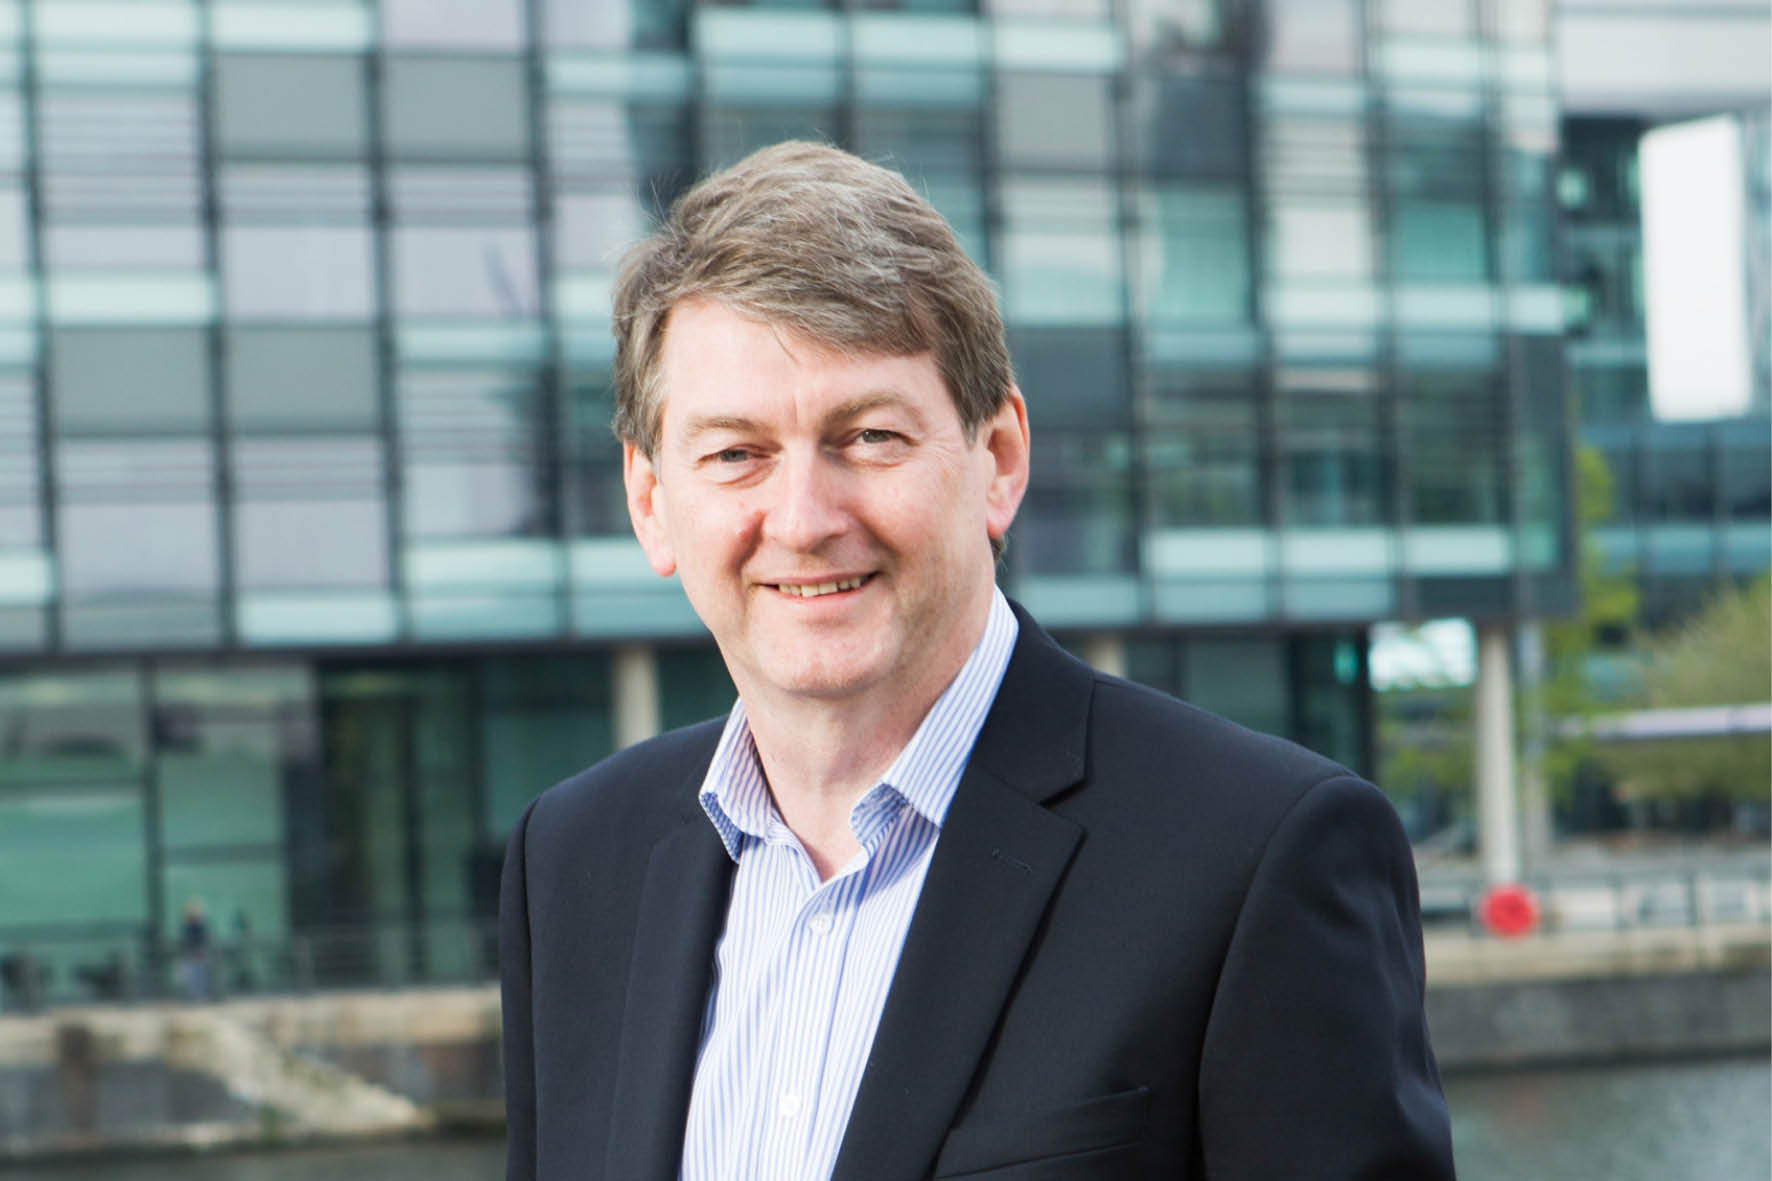 Phil Vickers - Co-founder and Partner